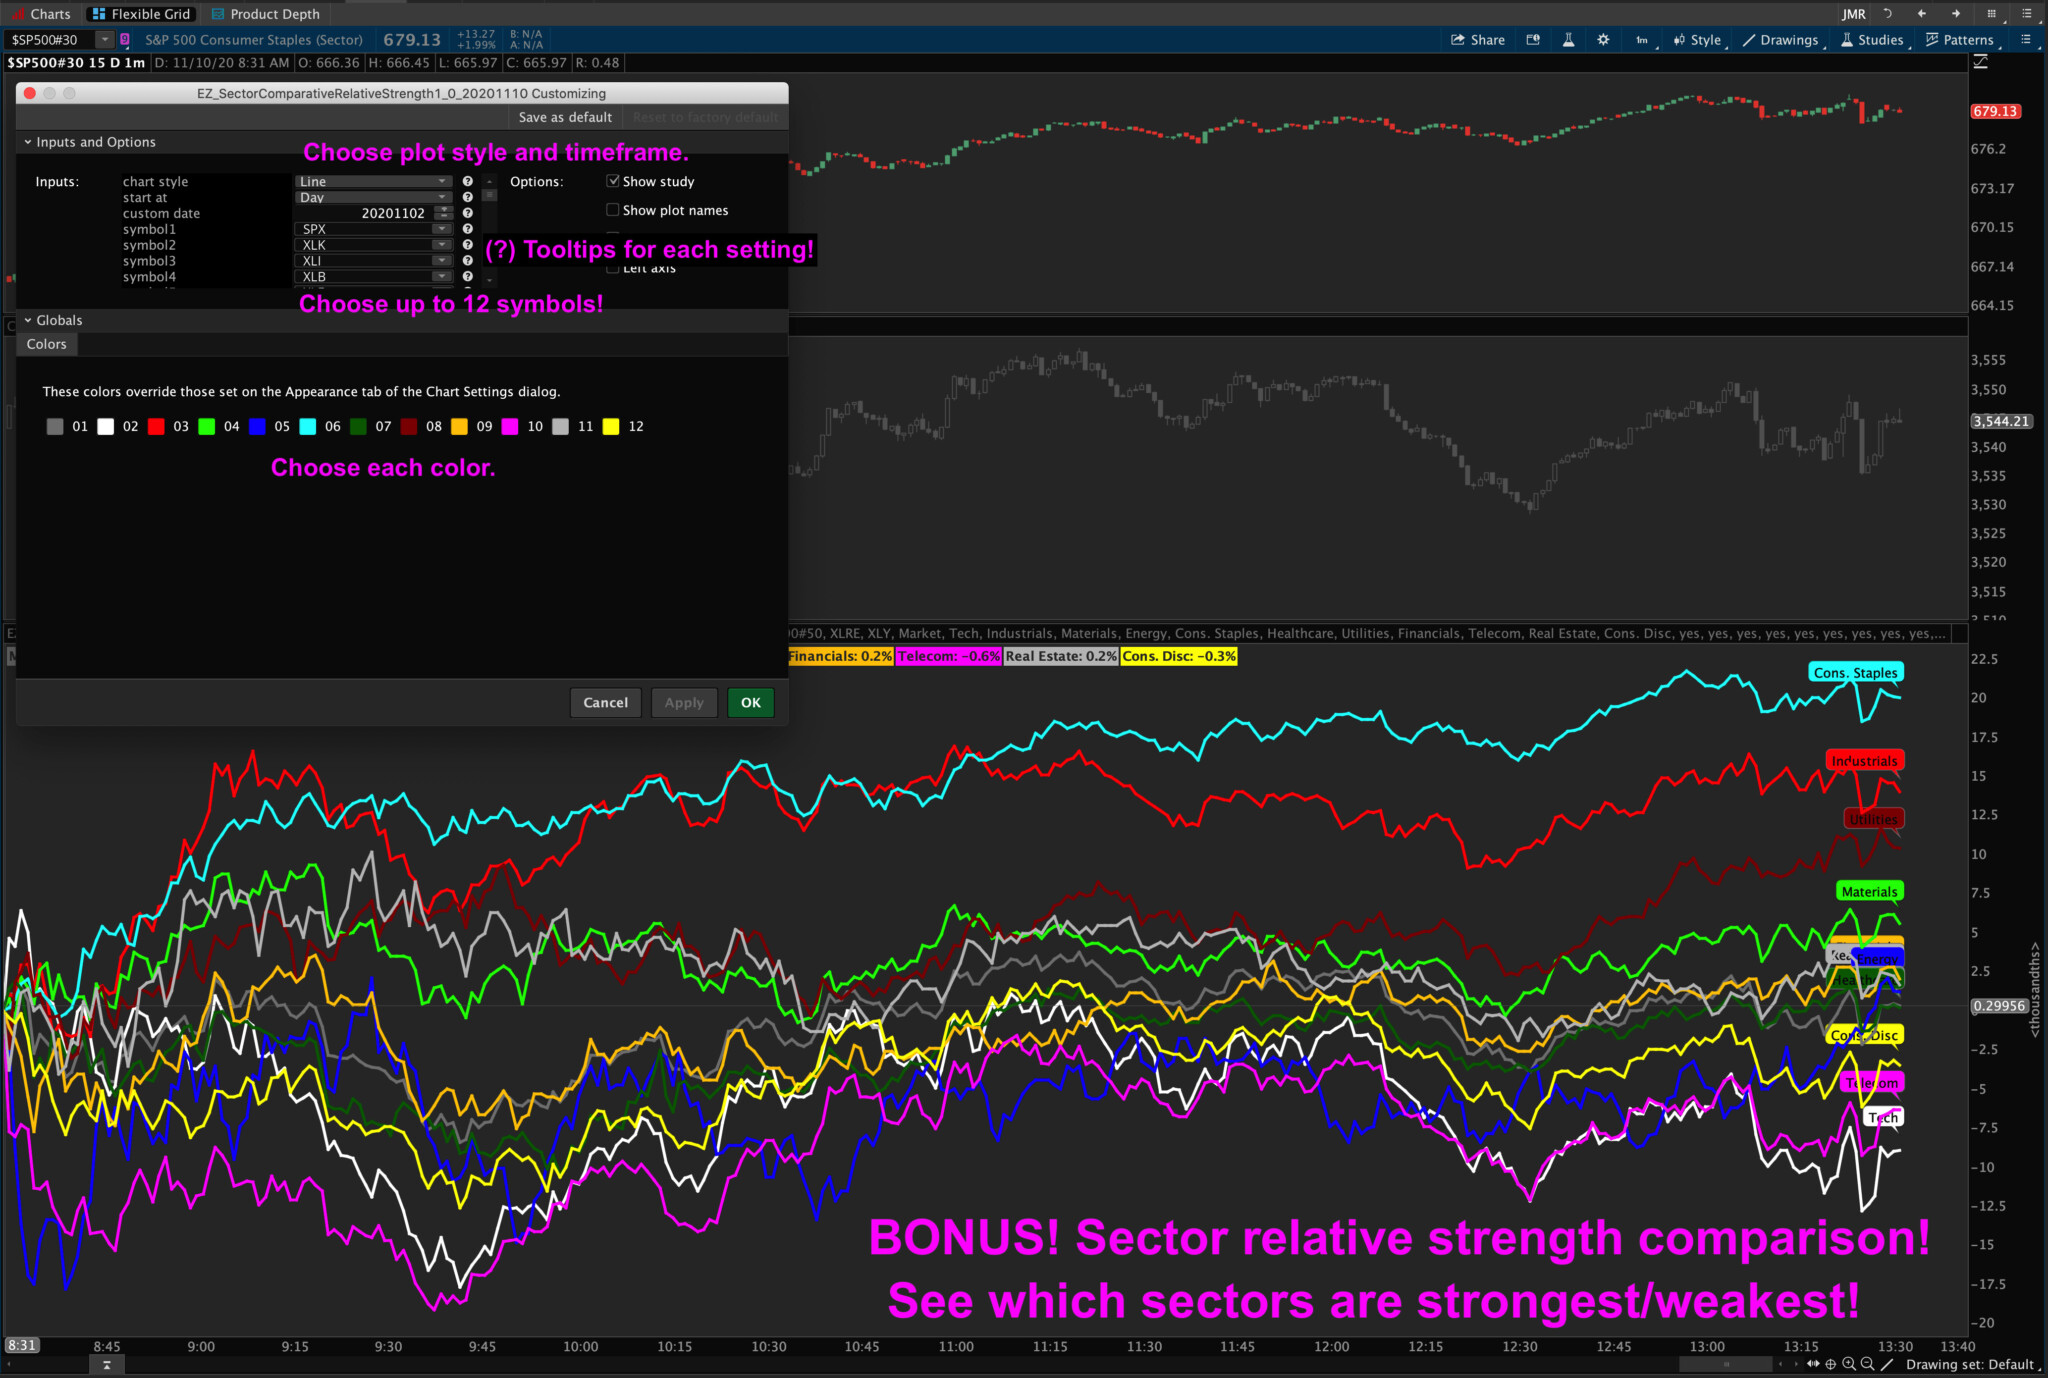 Thinkorswim Sector Relative Strength Comparison